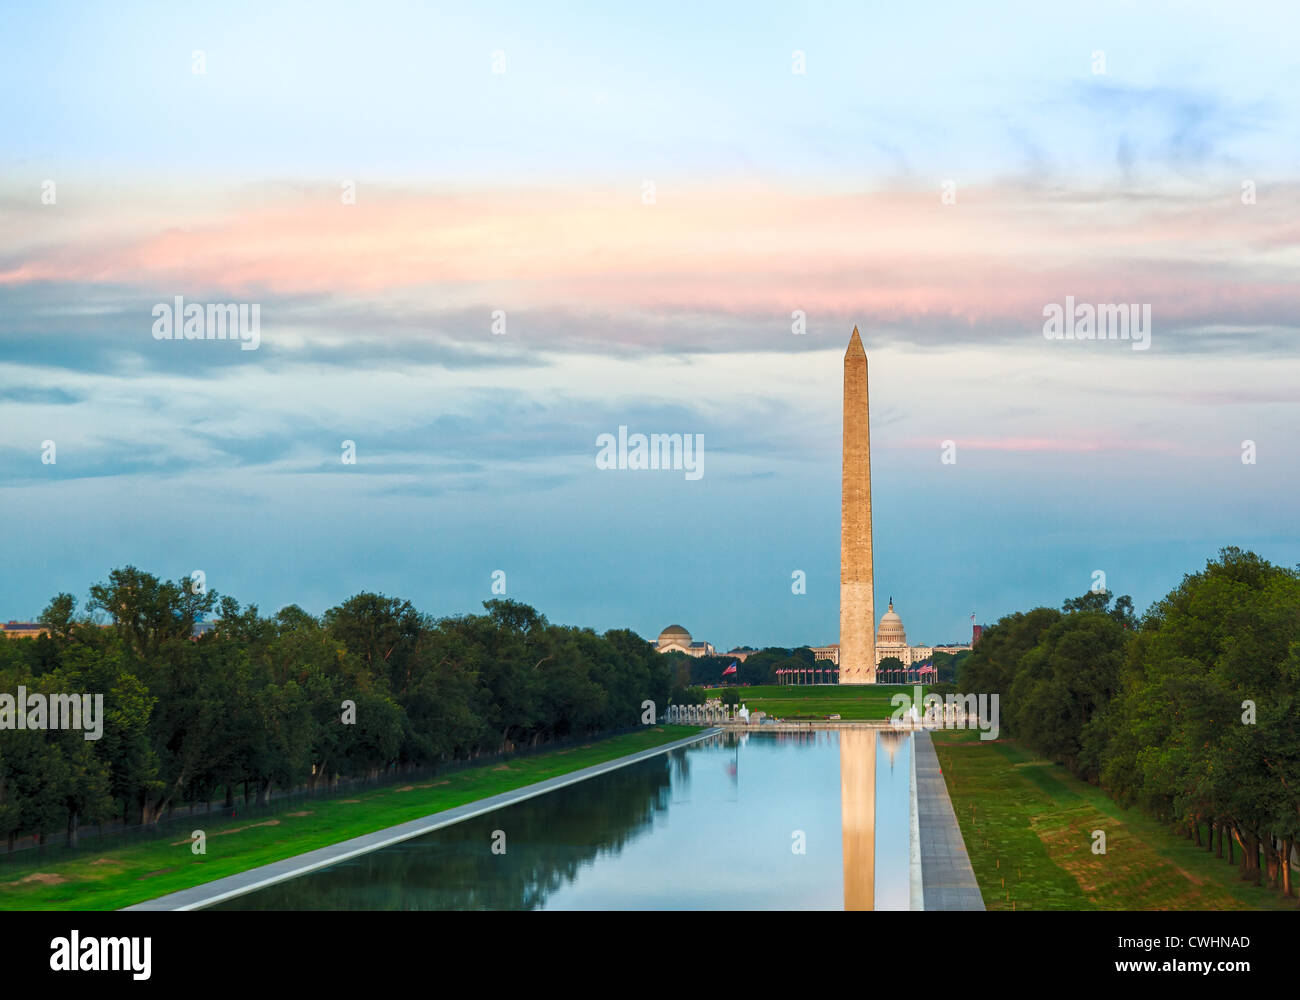 Setting sun illuminates Washington Monument in DC and Capitol with reflections in new Reflecting Pool, USA - Stock Image